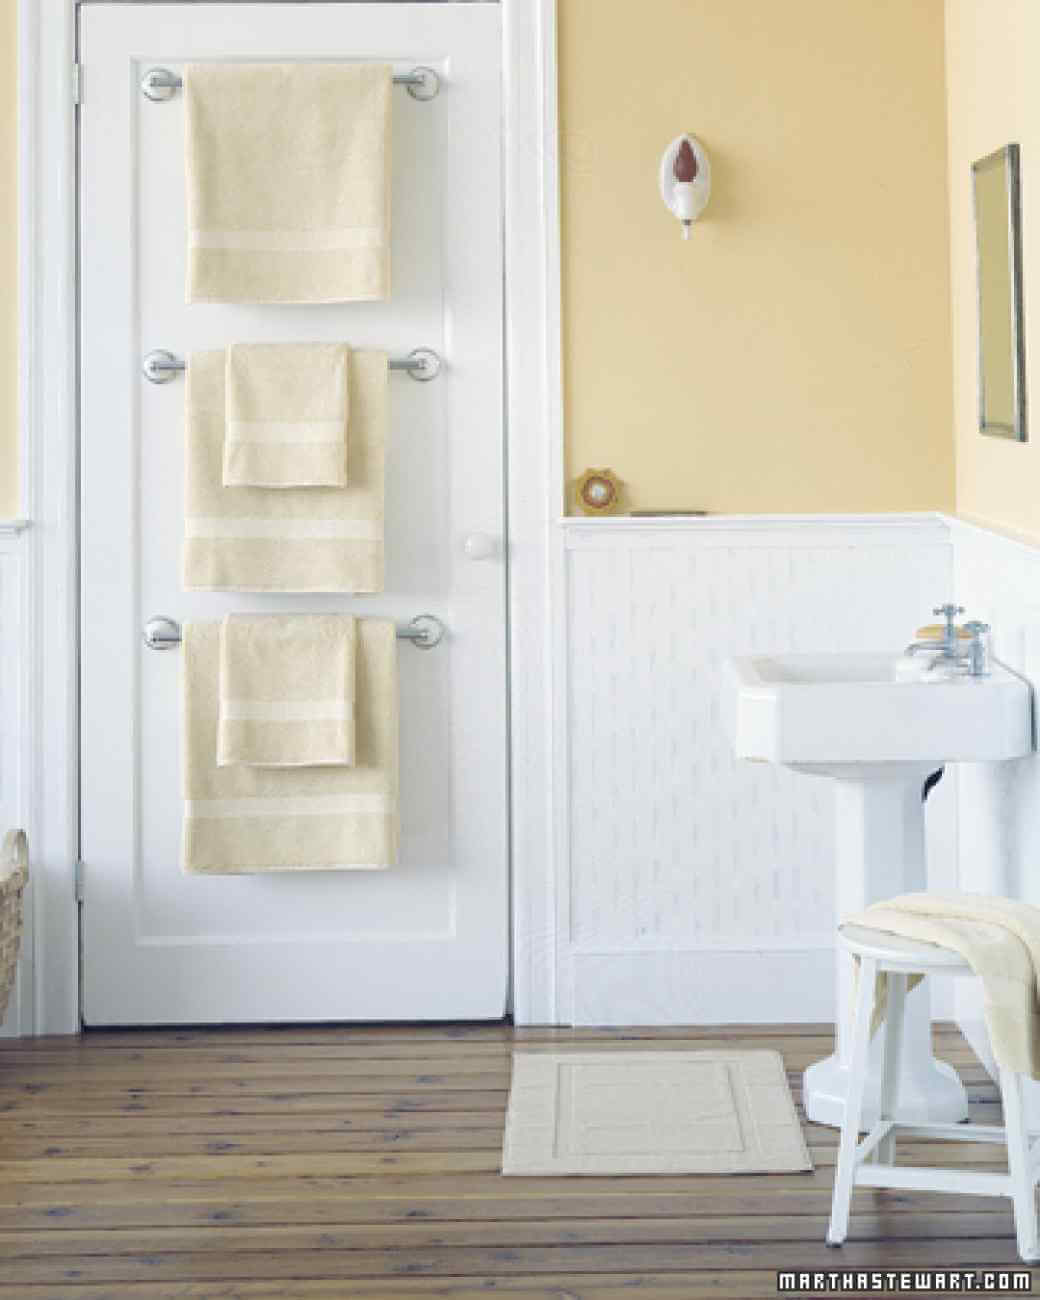 Creative bathroom storage solutions 4. an example of vertical space vognspq